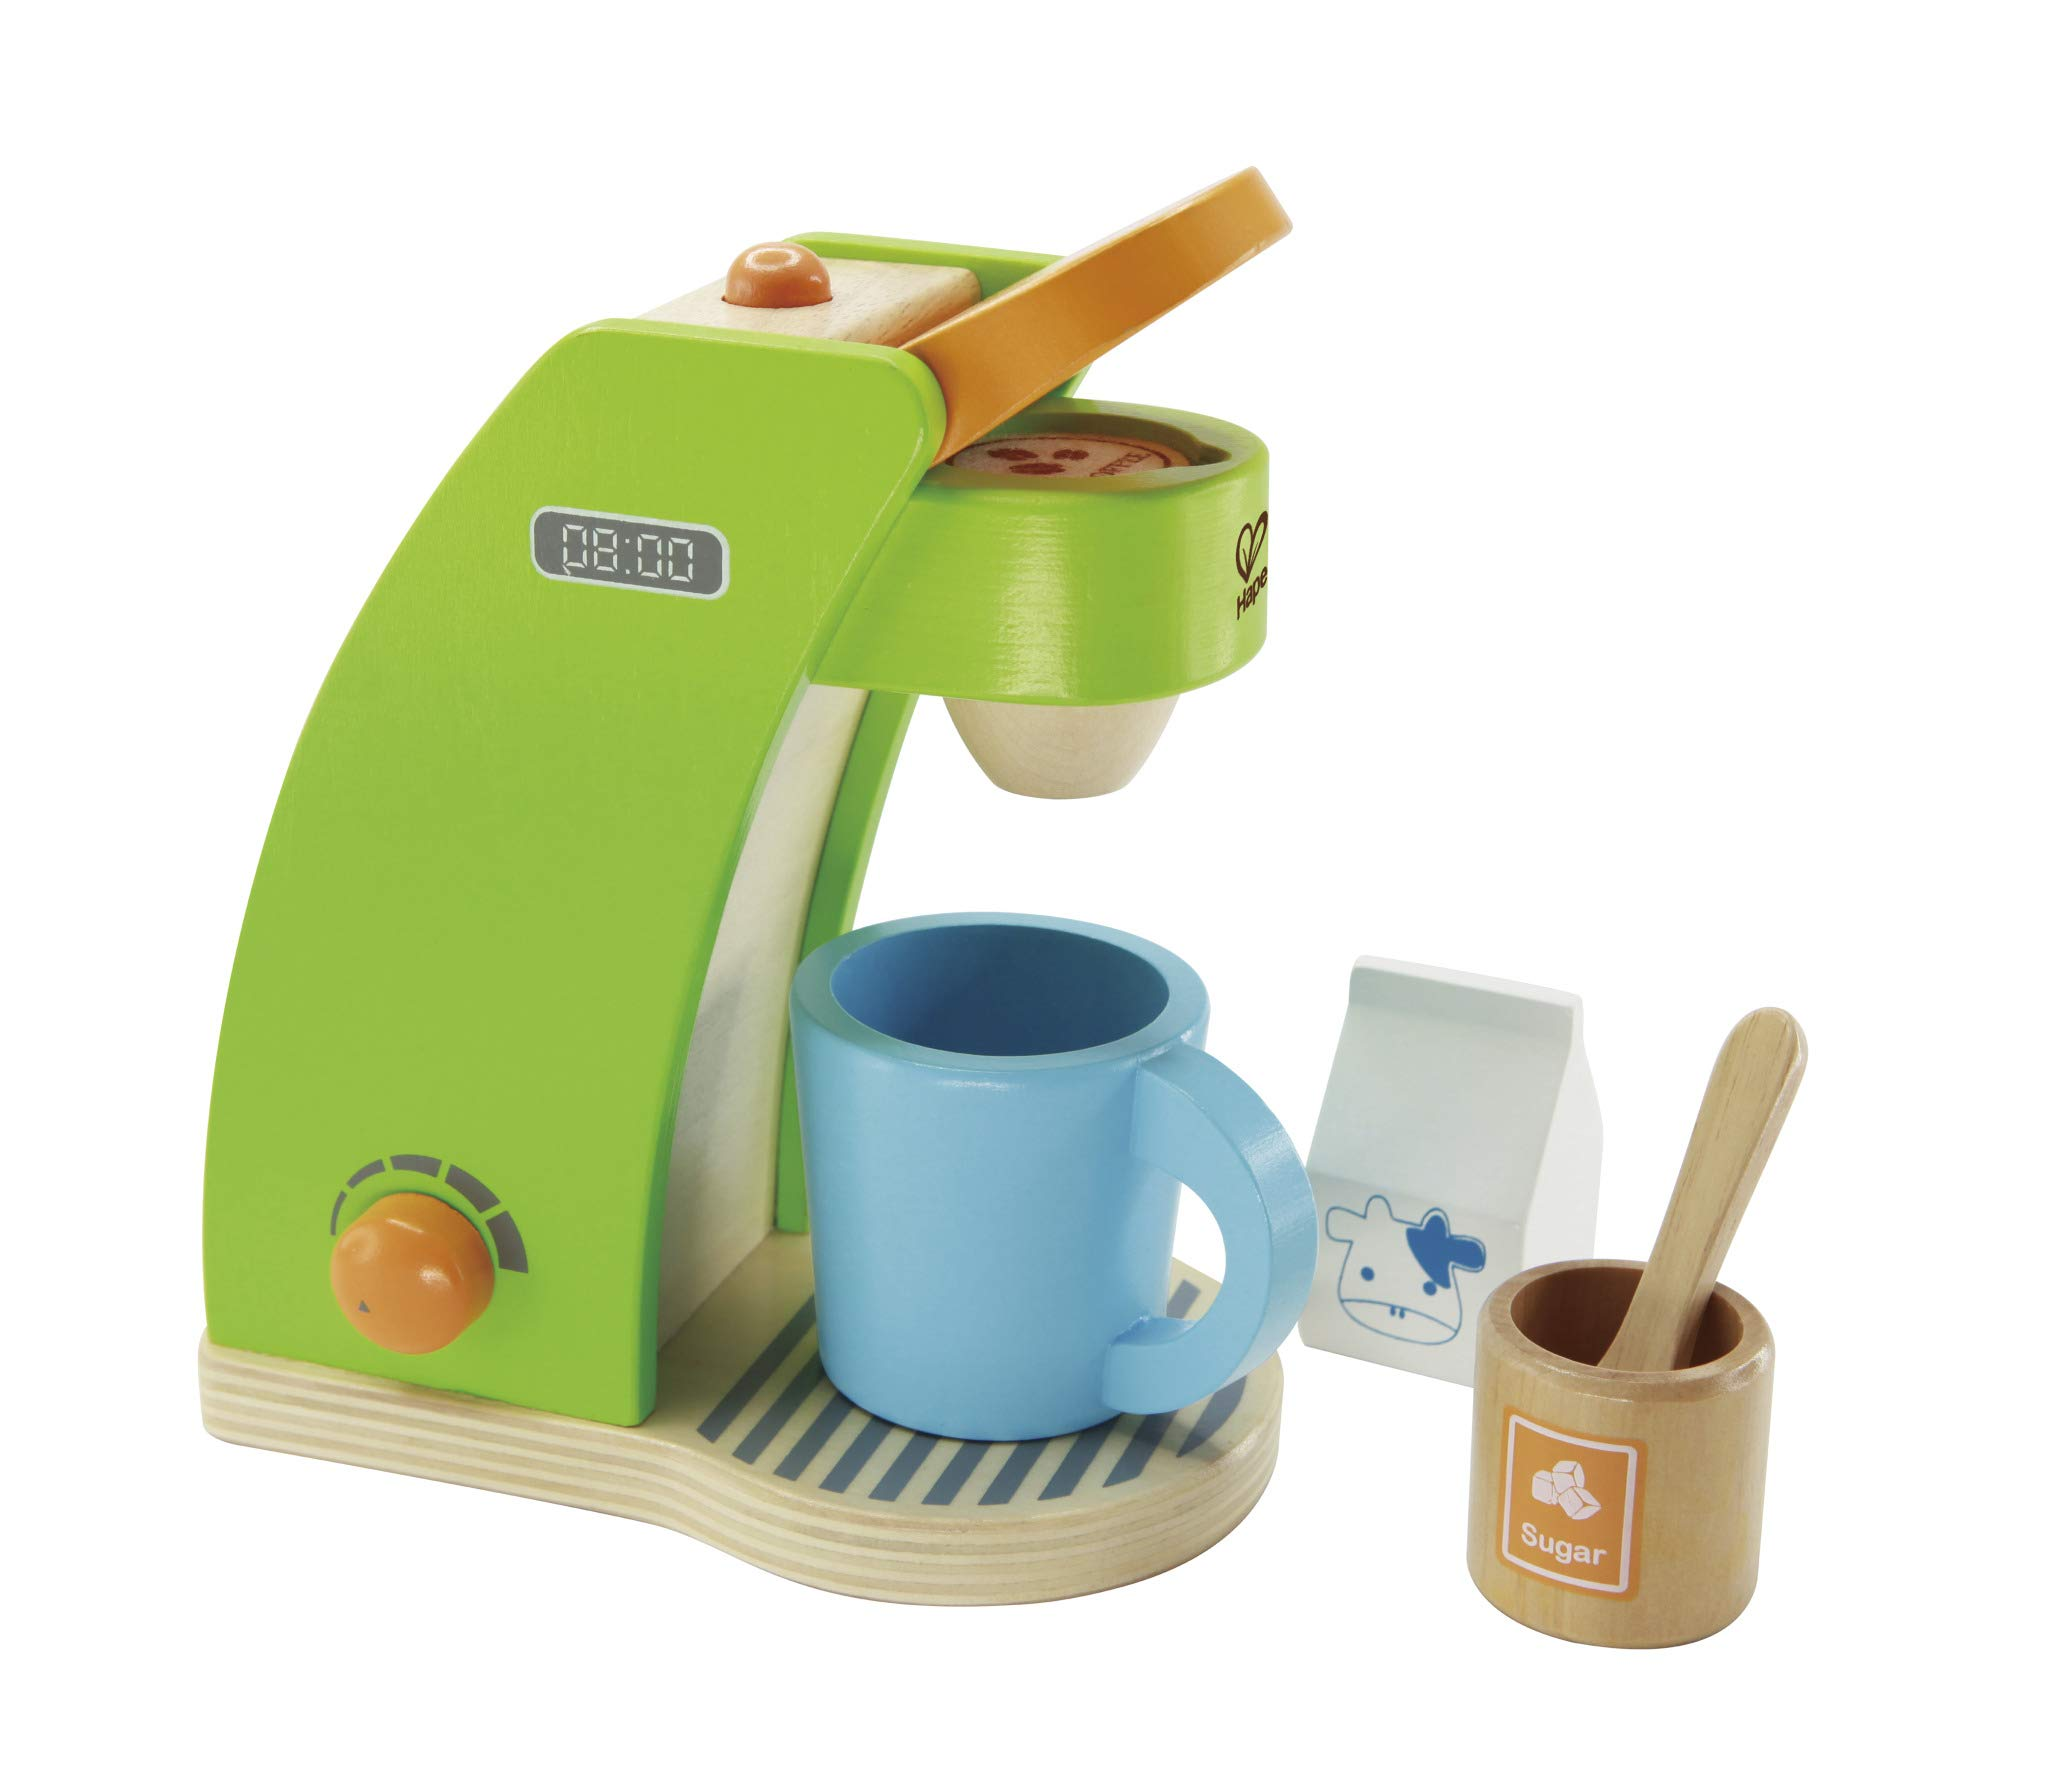 Hape Kid's Coffee Maker Wooden Play Kitchen Set with Accessories by Hape